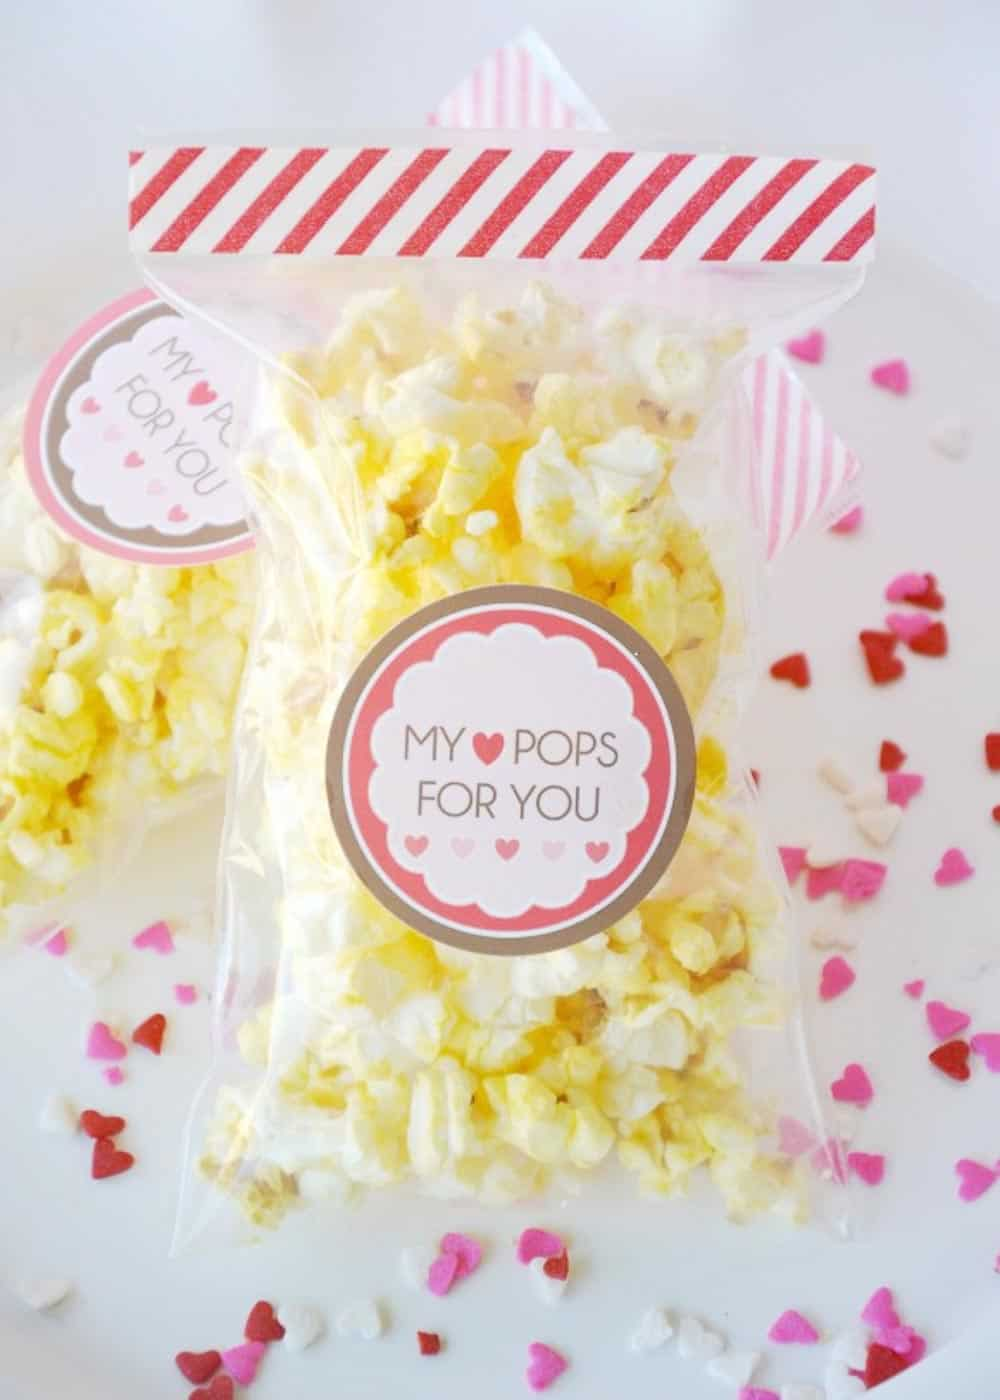 Hy Heart pops for you Valentine Idea with a bag full of popcorn and cute tags.